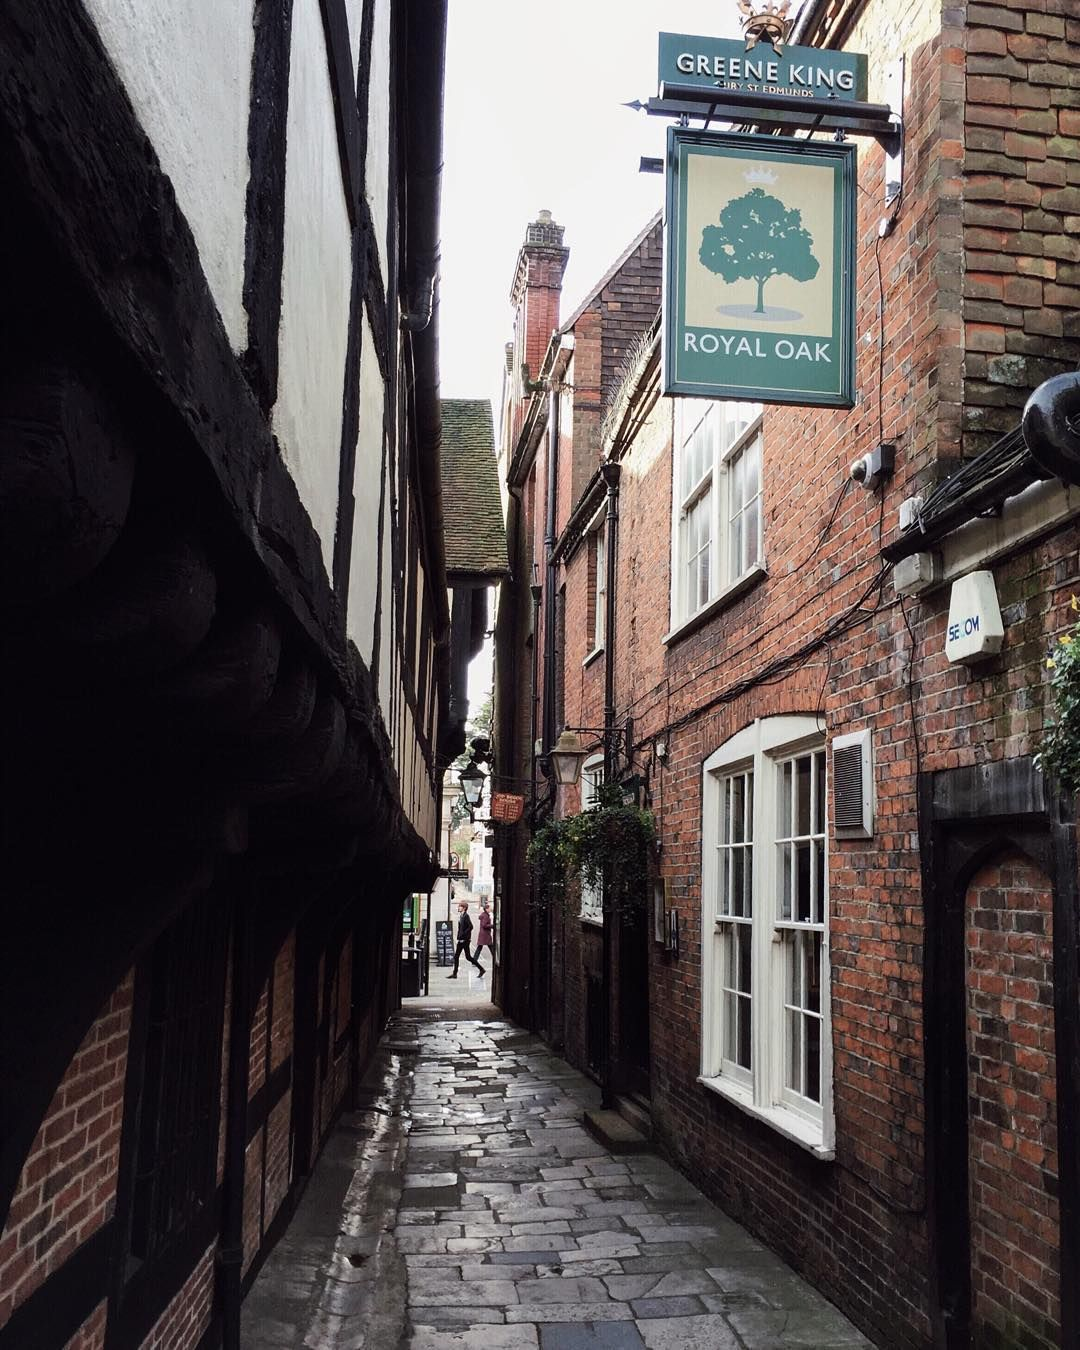 Okay So The Royal Oak Claims To Be The Oldest Pub In England